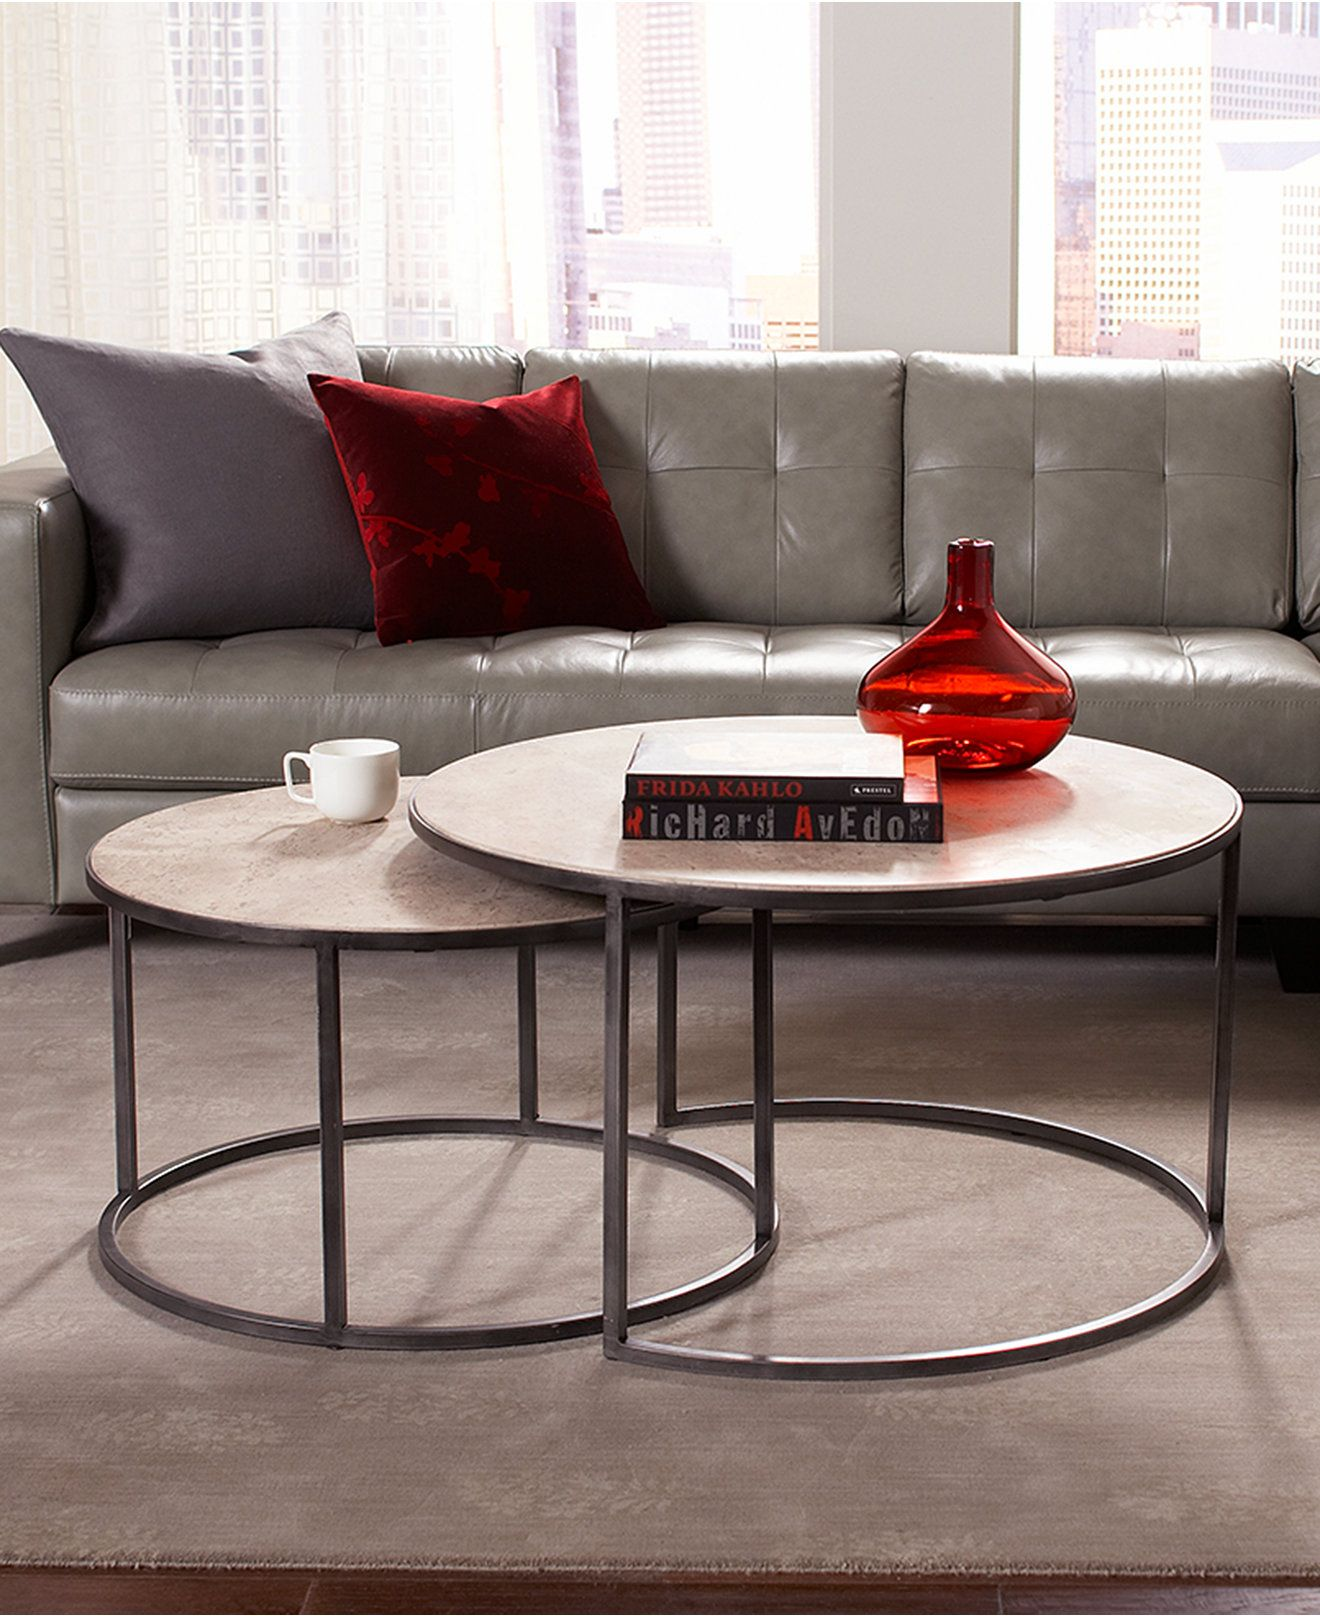 Monterey Round Table Furniture Collection Round Coffee Table Living Room Round Furniture Nesting Coffee Tables [ 1616 x 1320 Pixel ]